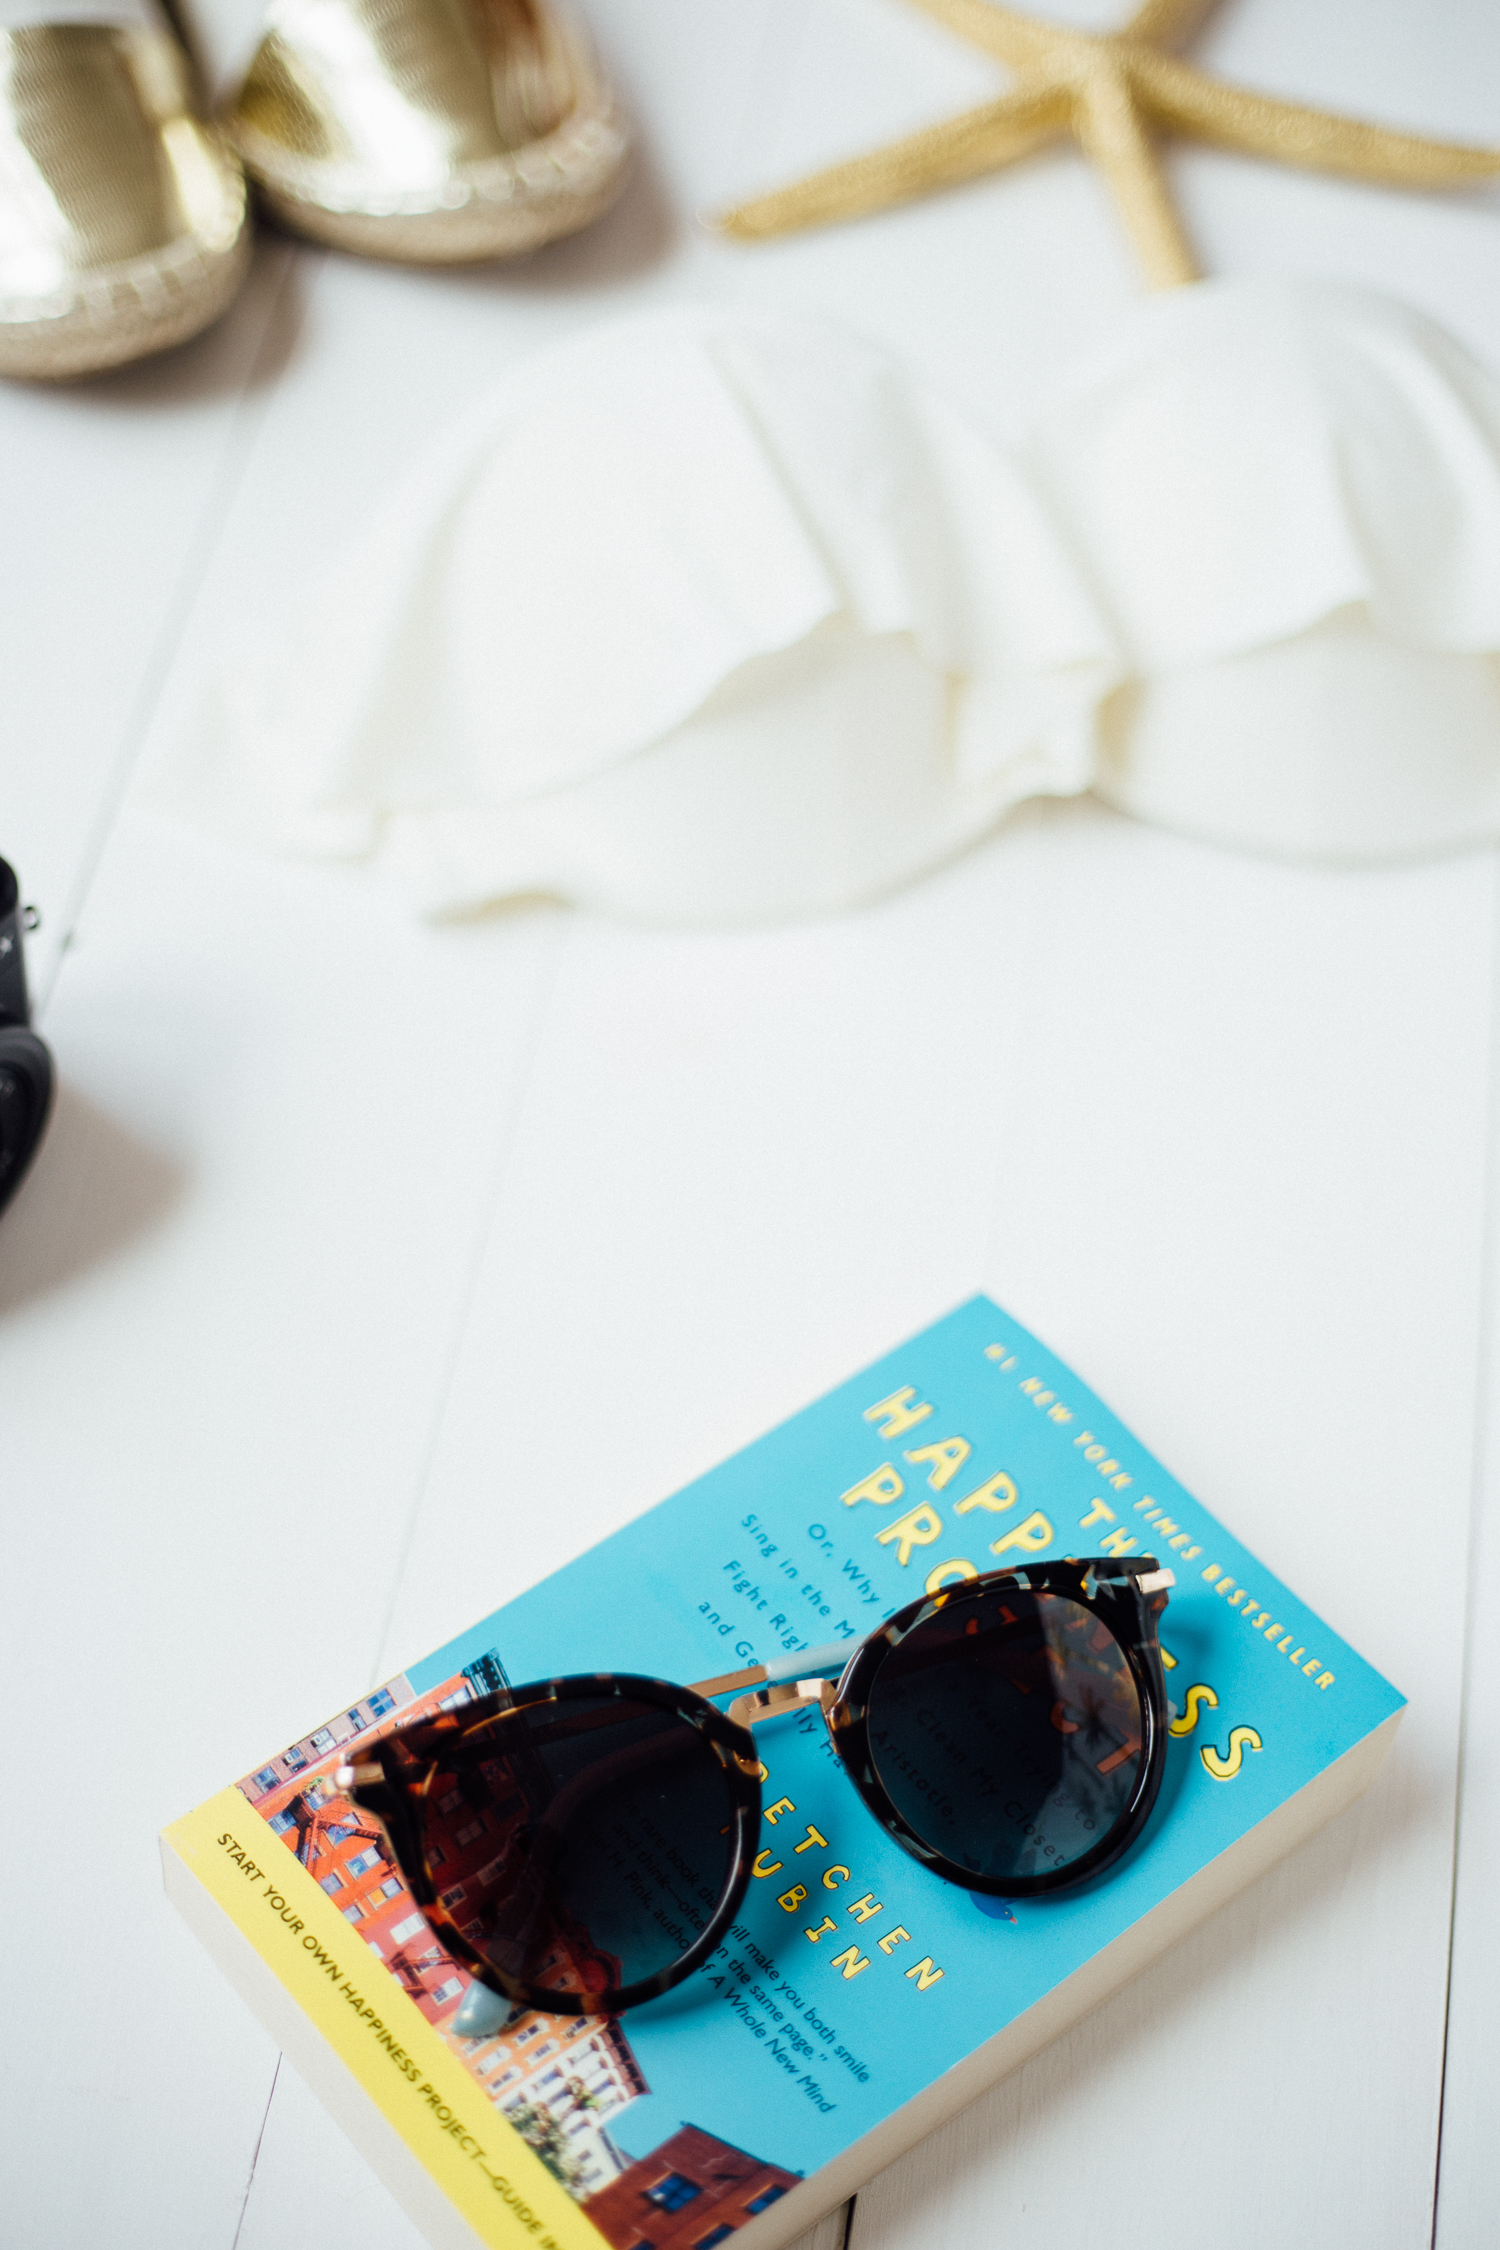 How I Plan To Make The Most Of My Summer   Summer Bucket List. Click through to read more!